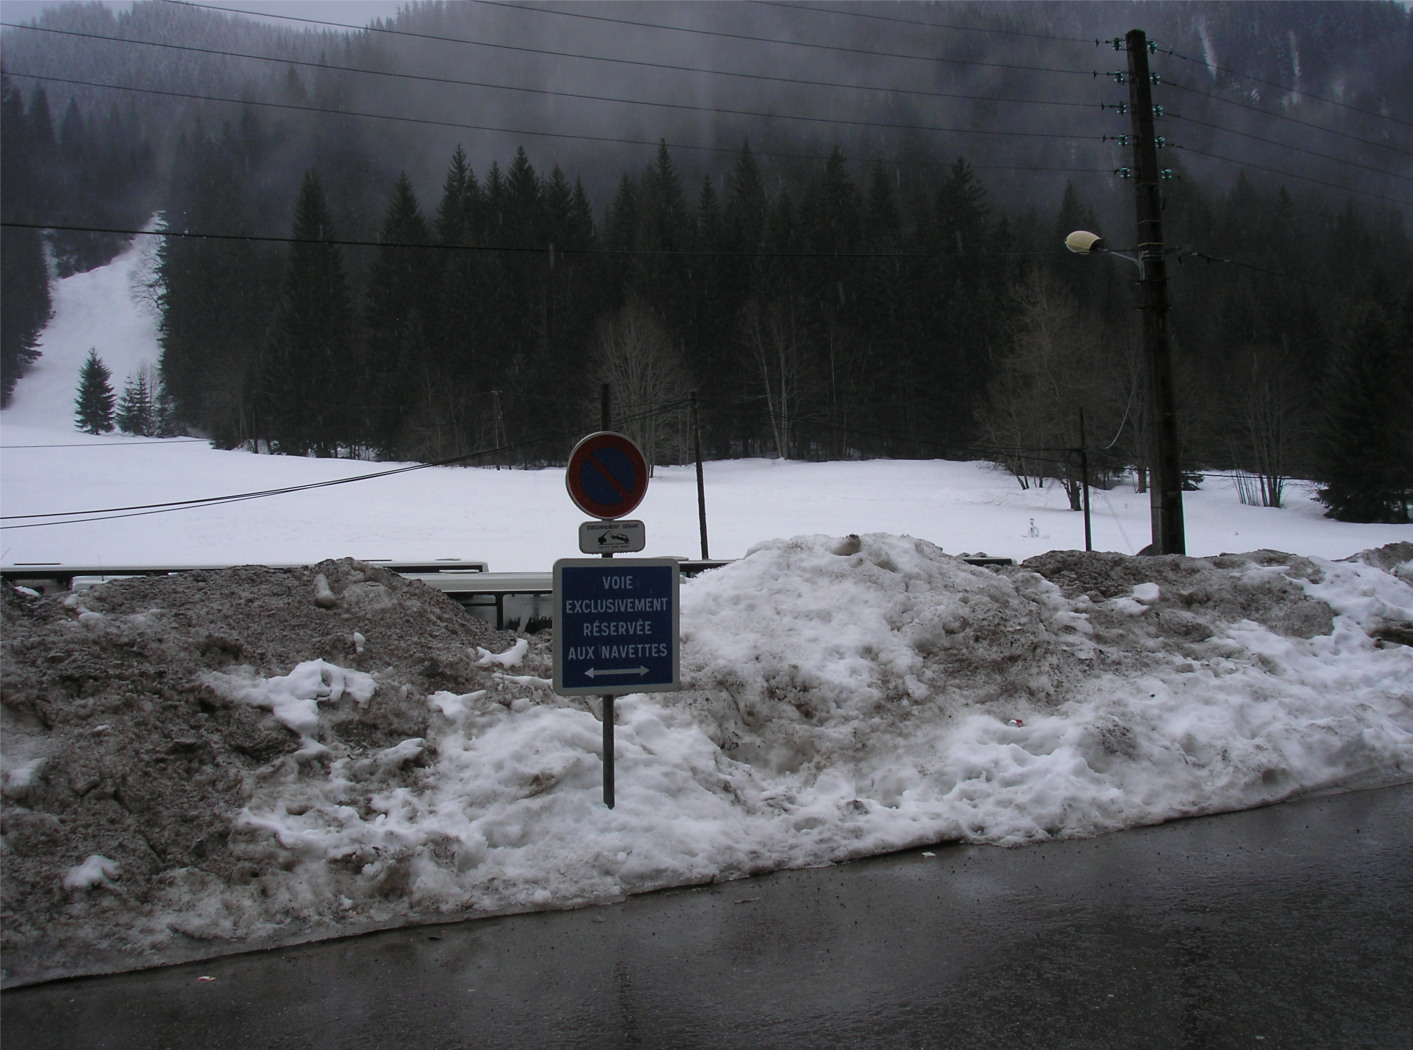 Alps - Mostly Unsettled with a lot of precipitation and some snow